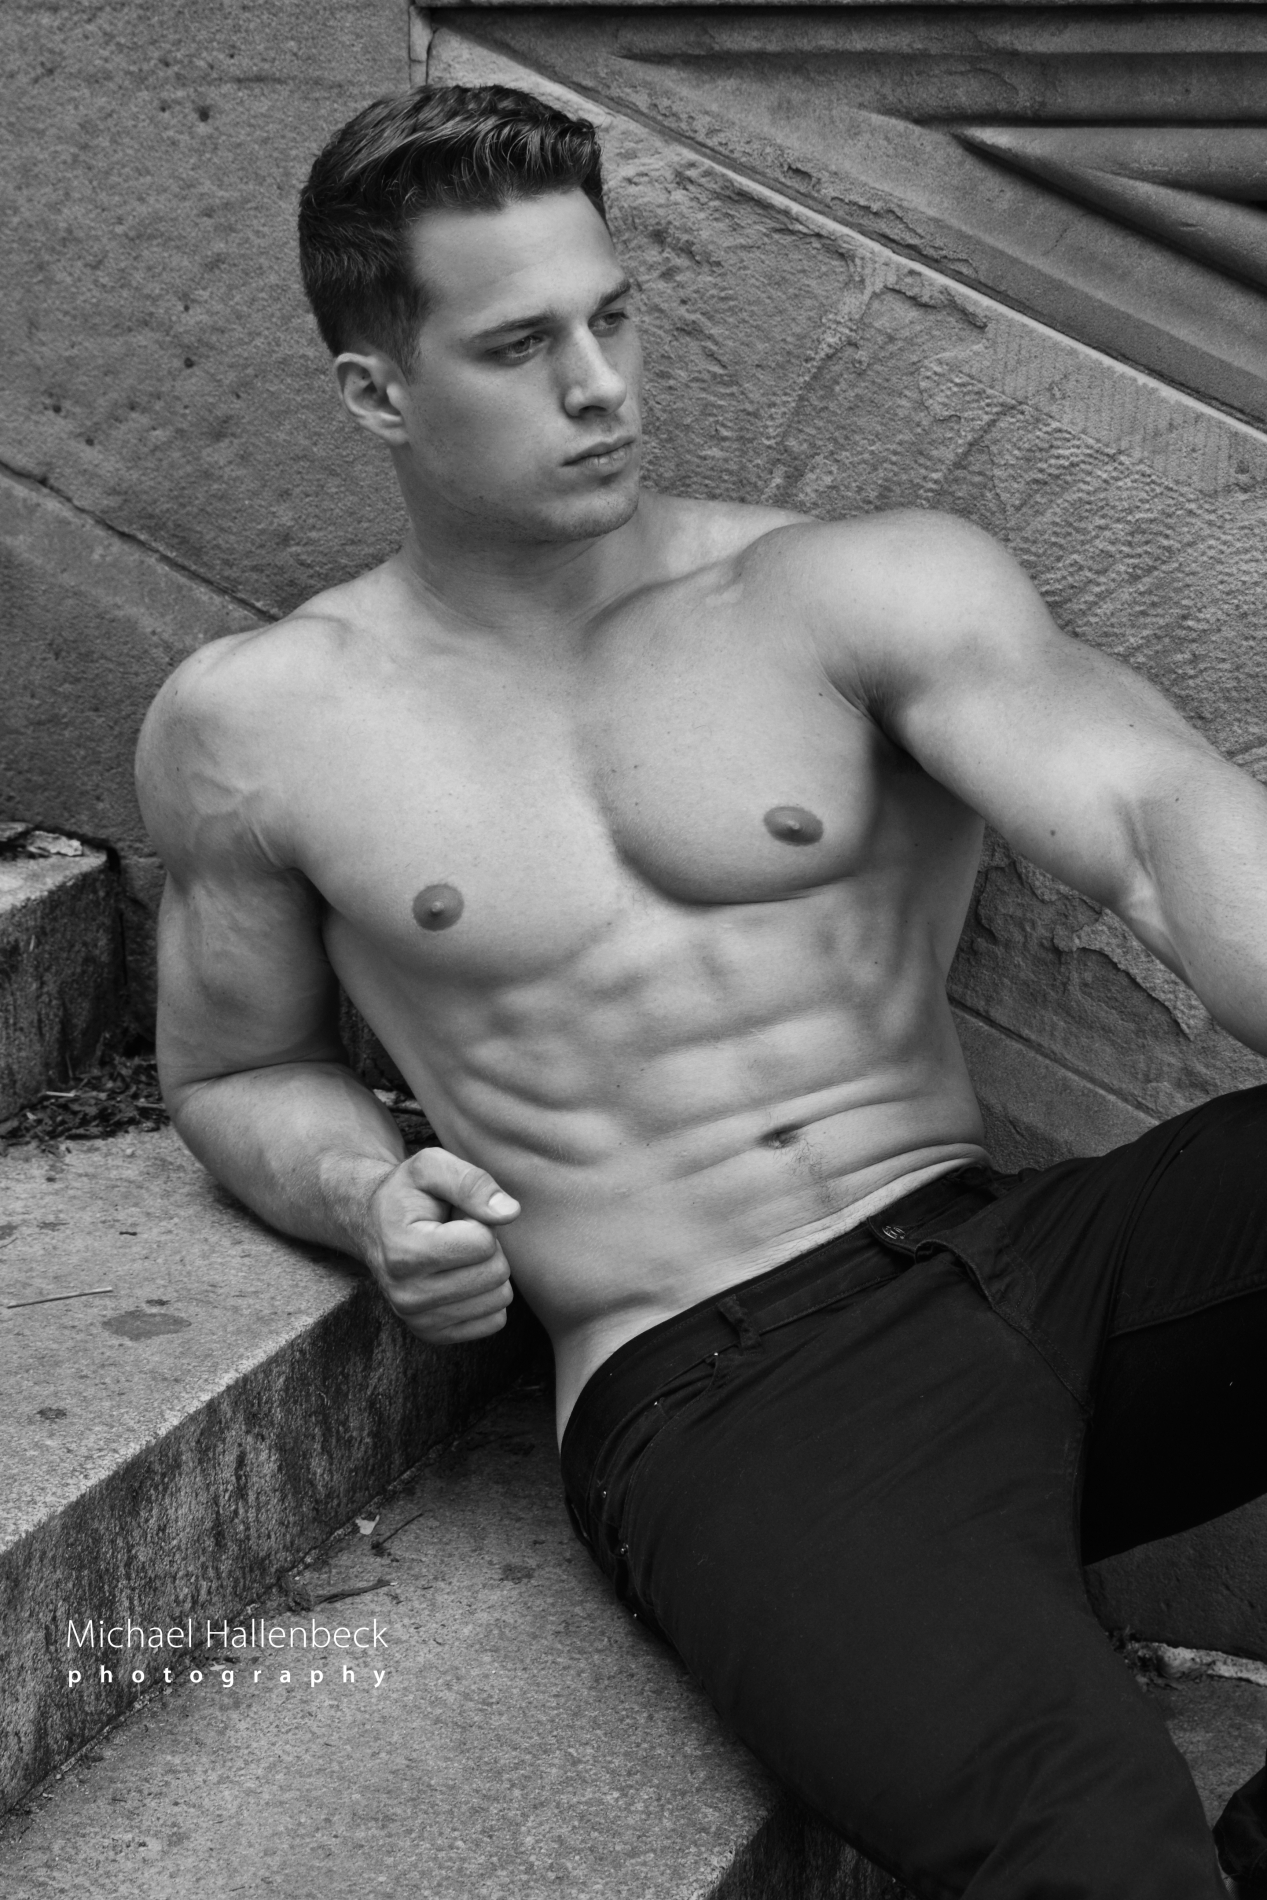 nick-sandell-by-michael-hallenbeck-pnv-network12